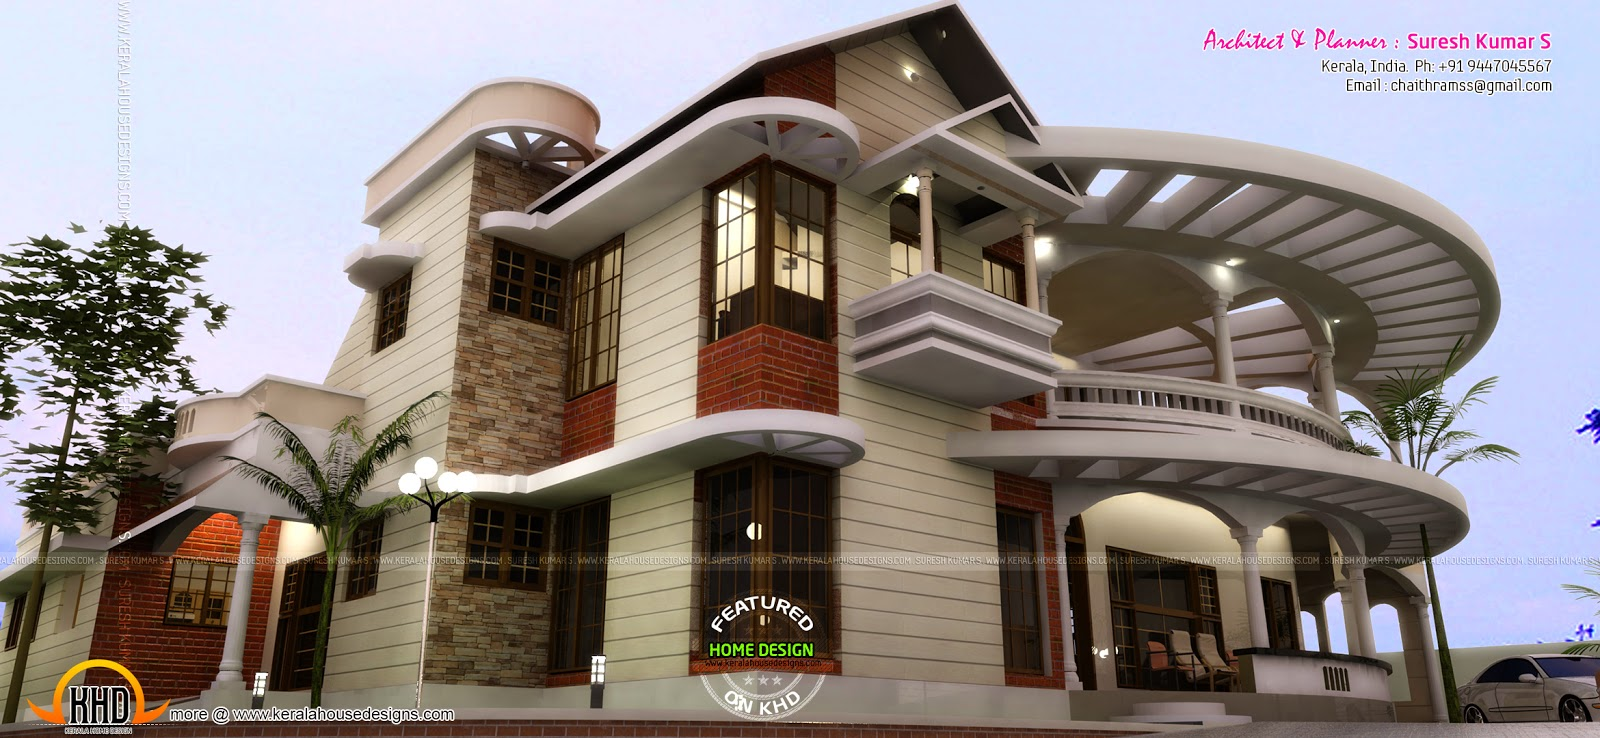 Great looking house design by suresh kumar kerala home for Great house designs